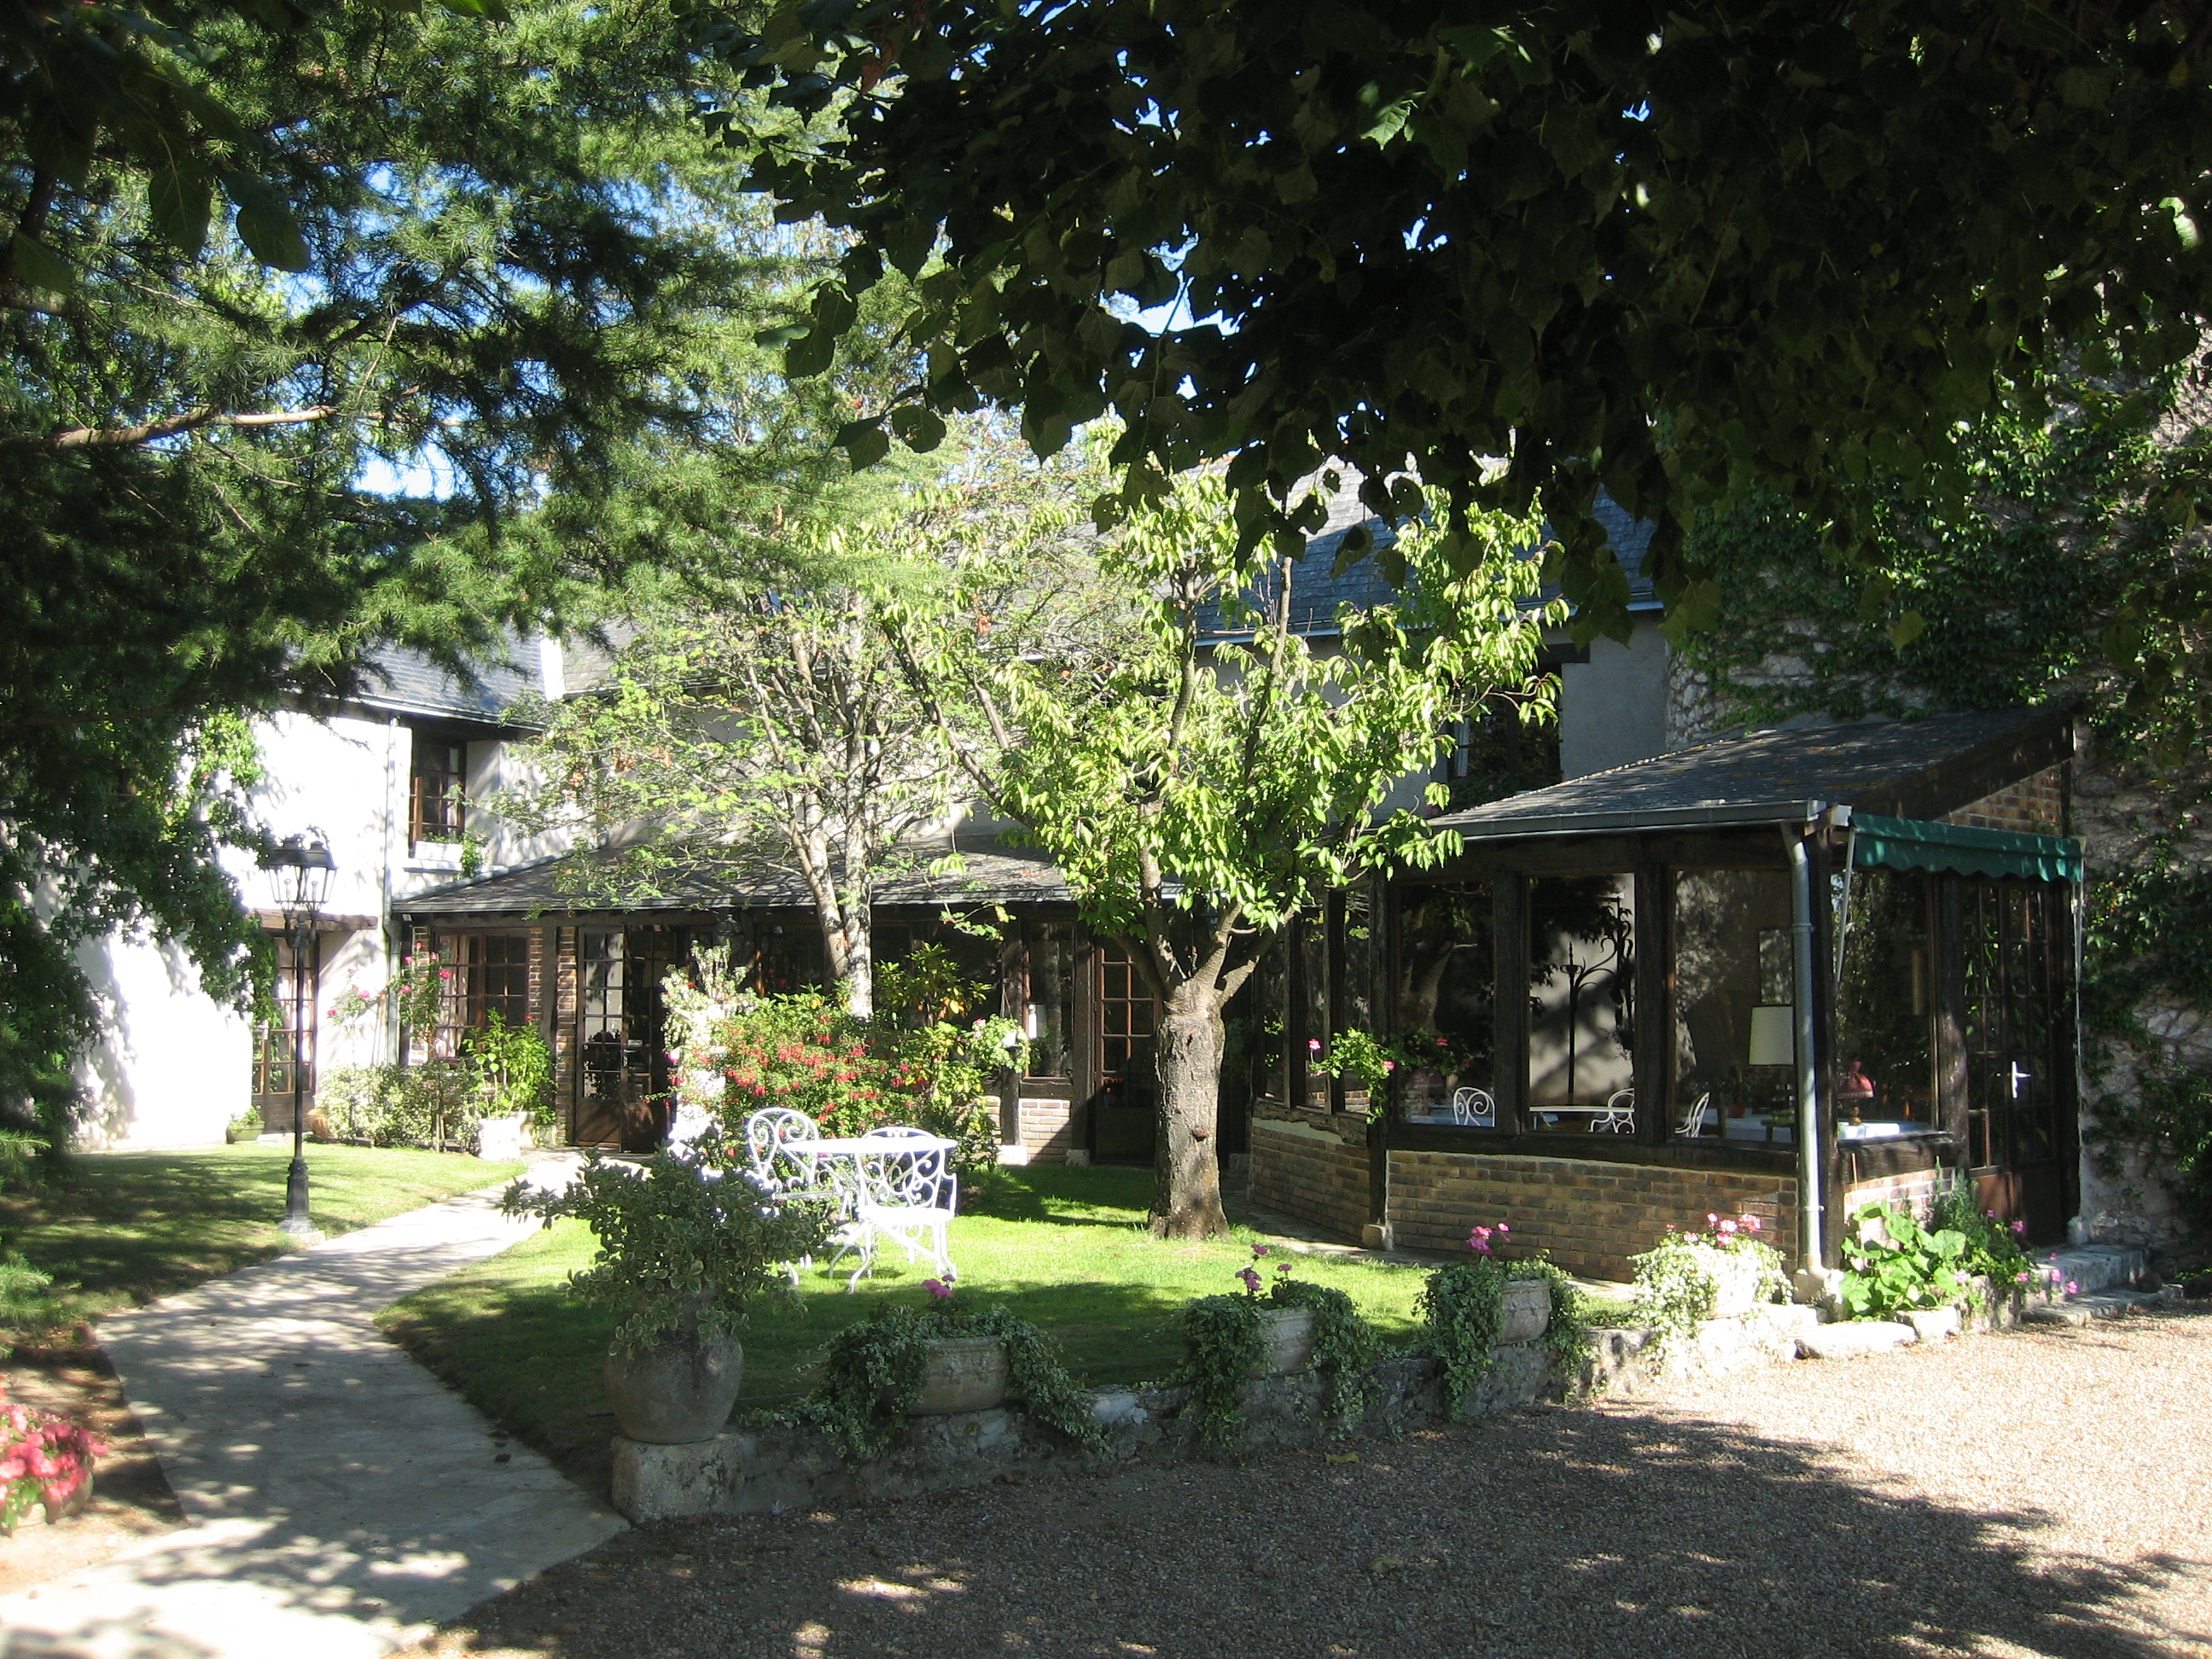 Bienvenue au restaurant de la tour for Restaurant le jardin domont 95